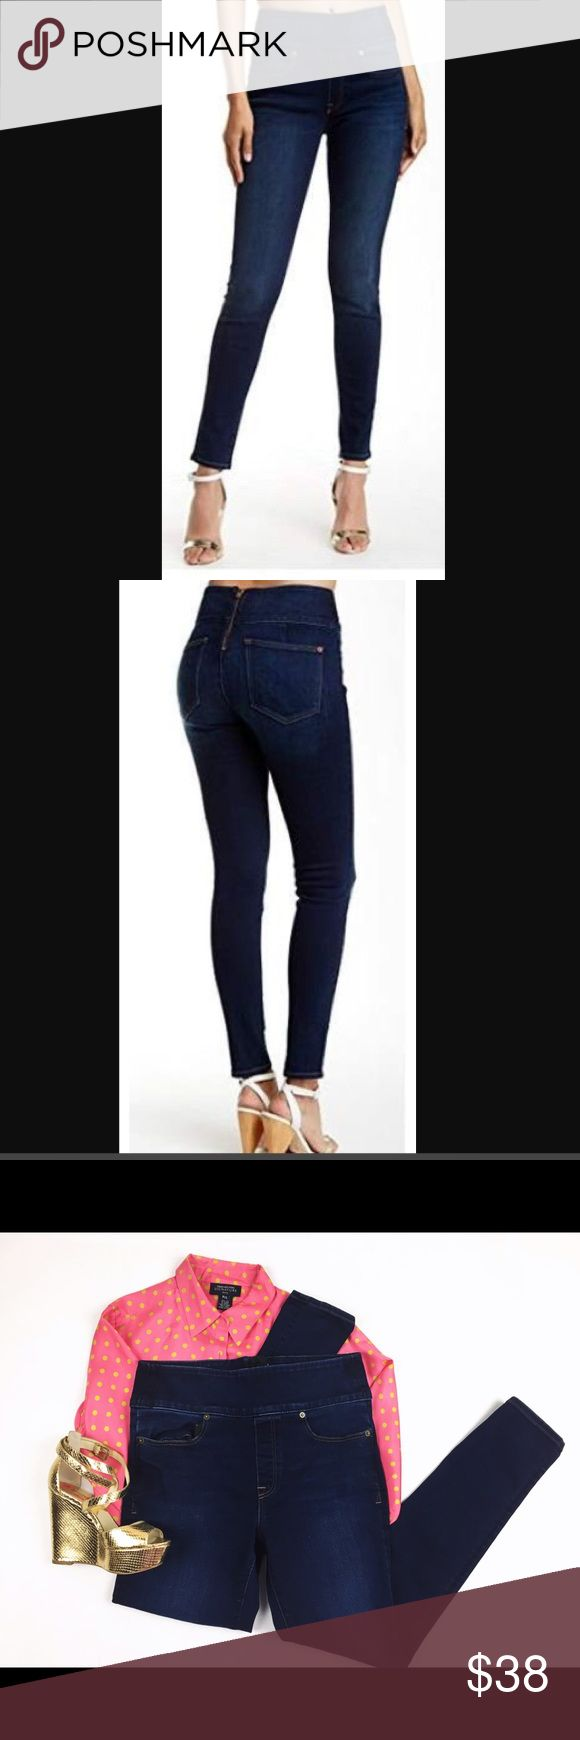 """SPANX SIGNATURE WAIST SKINNY JEANS Gorgeous Spanx Waist Signature skinny jean, perfect tummy slimmer, leg hugging and booty popping Jean! It's very gently used with no visible signs of usage, no stains, no holes. Brings the best figure out of you! Measurements: Waist to crotch 11.5 inches Inseam 28"""". SPANX Jeans Skinny"""